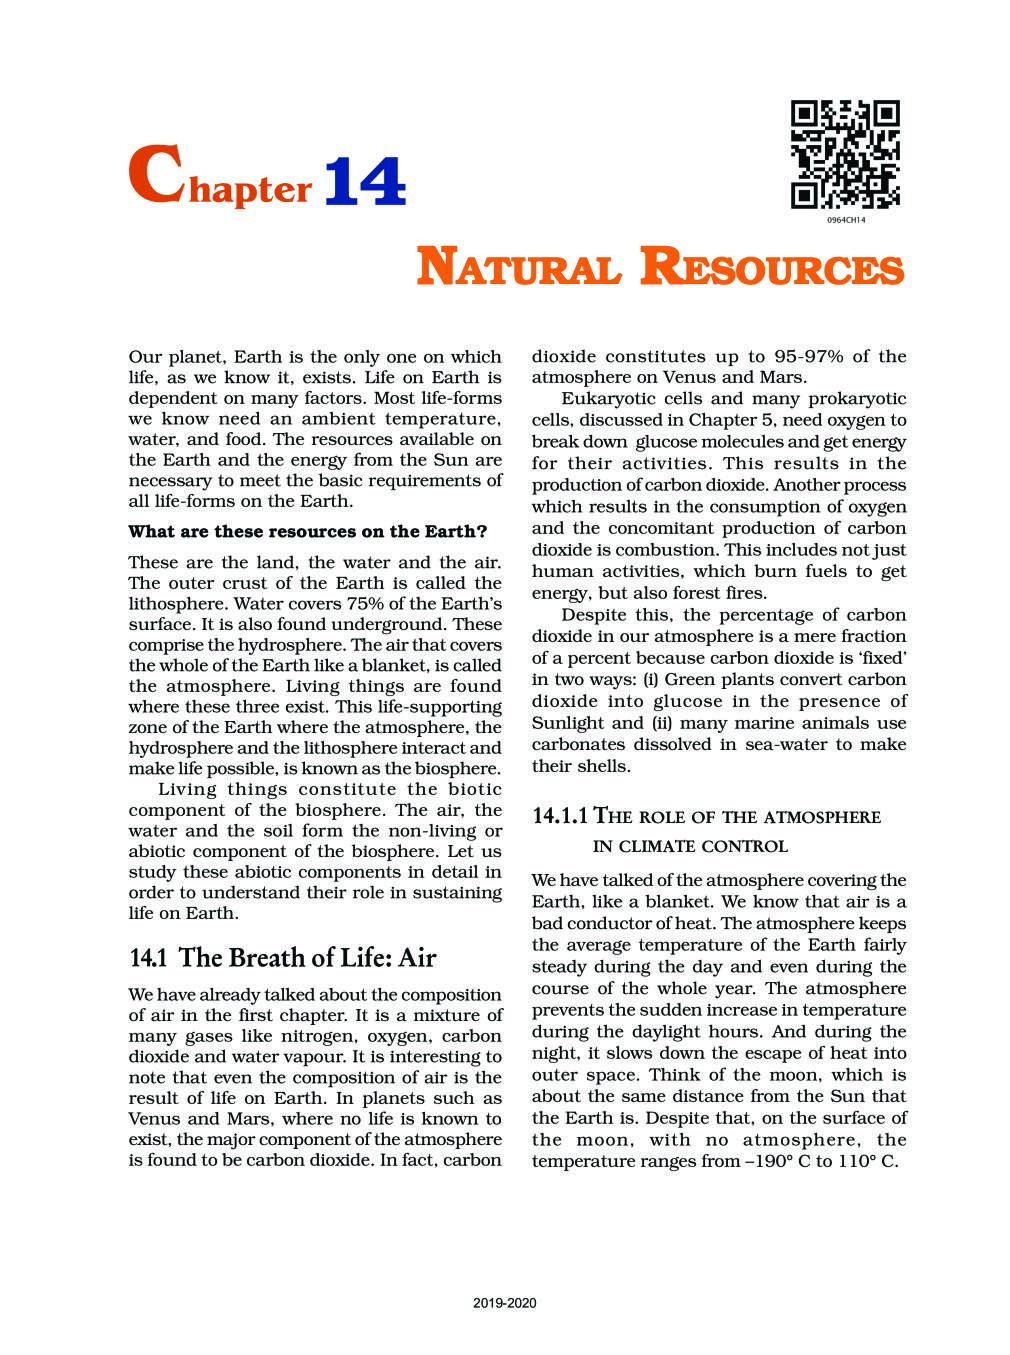 NCERT Book Class 9 Science Chapter 14 Natural Resources